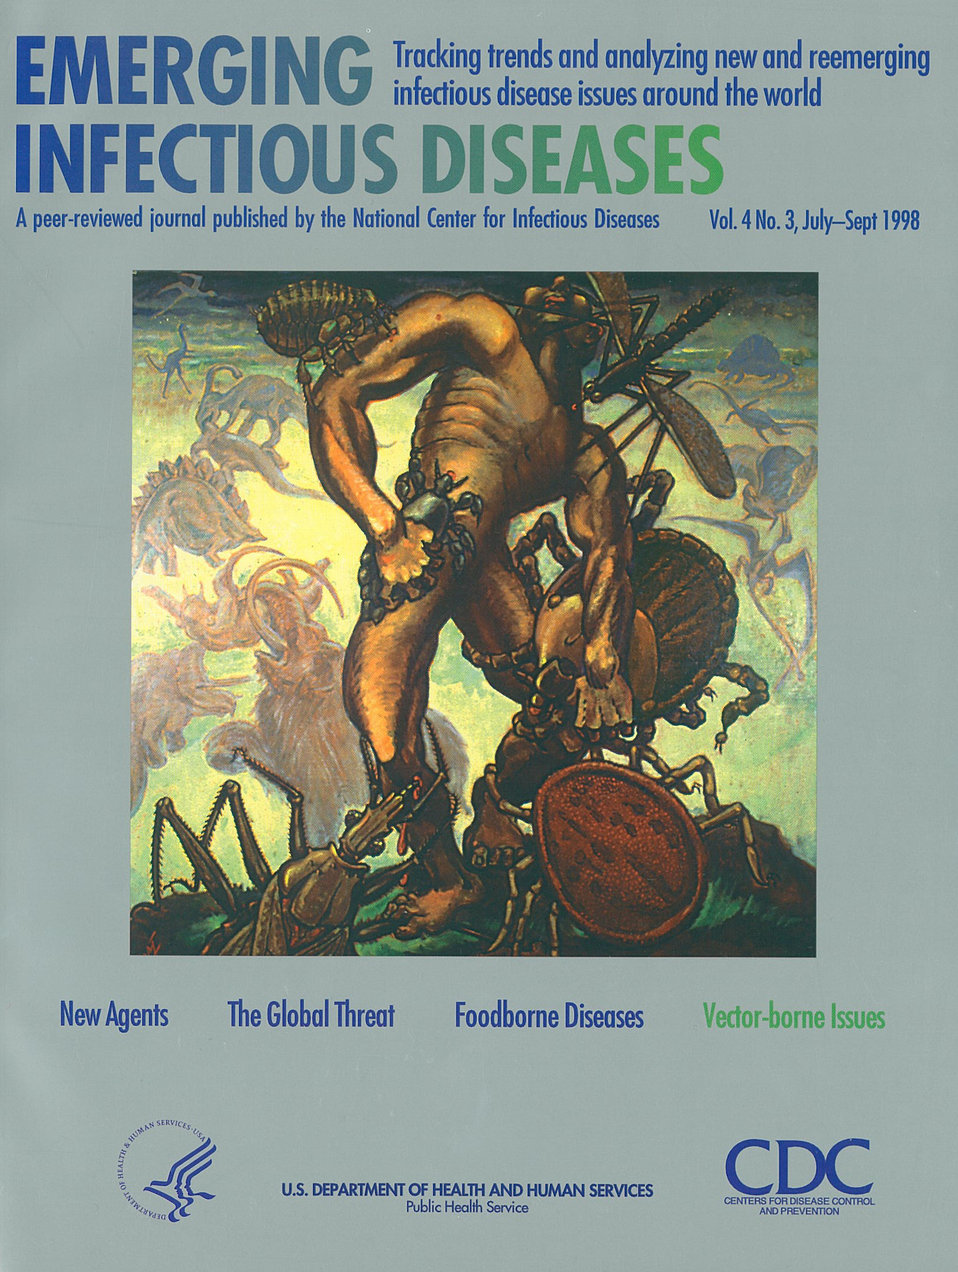 Emerging Infectious Diseases (EID) cover artwork for Volume 4, Number 3, July-September 1998 issue.